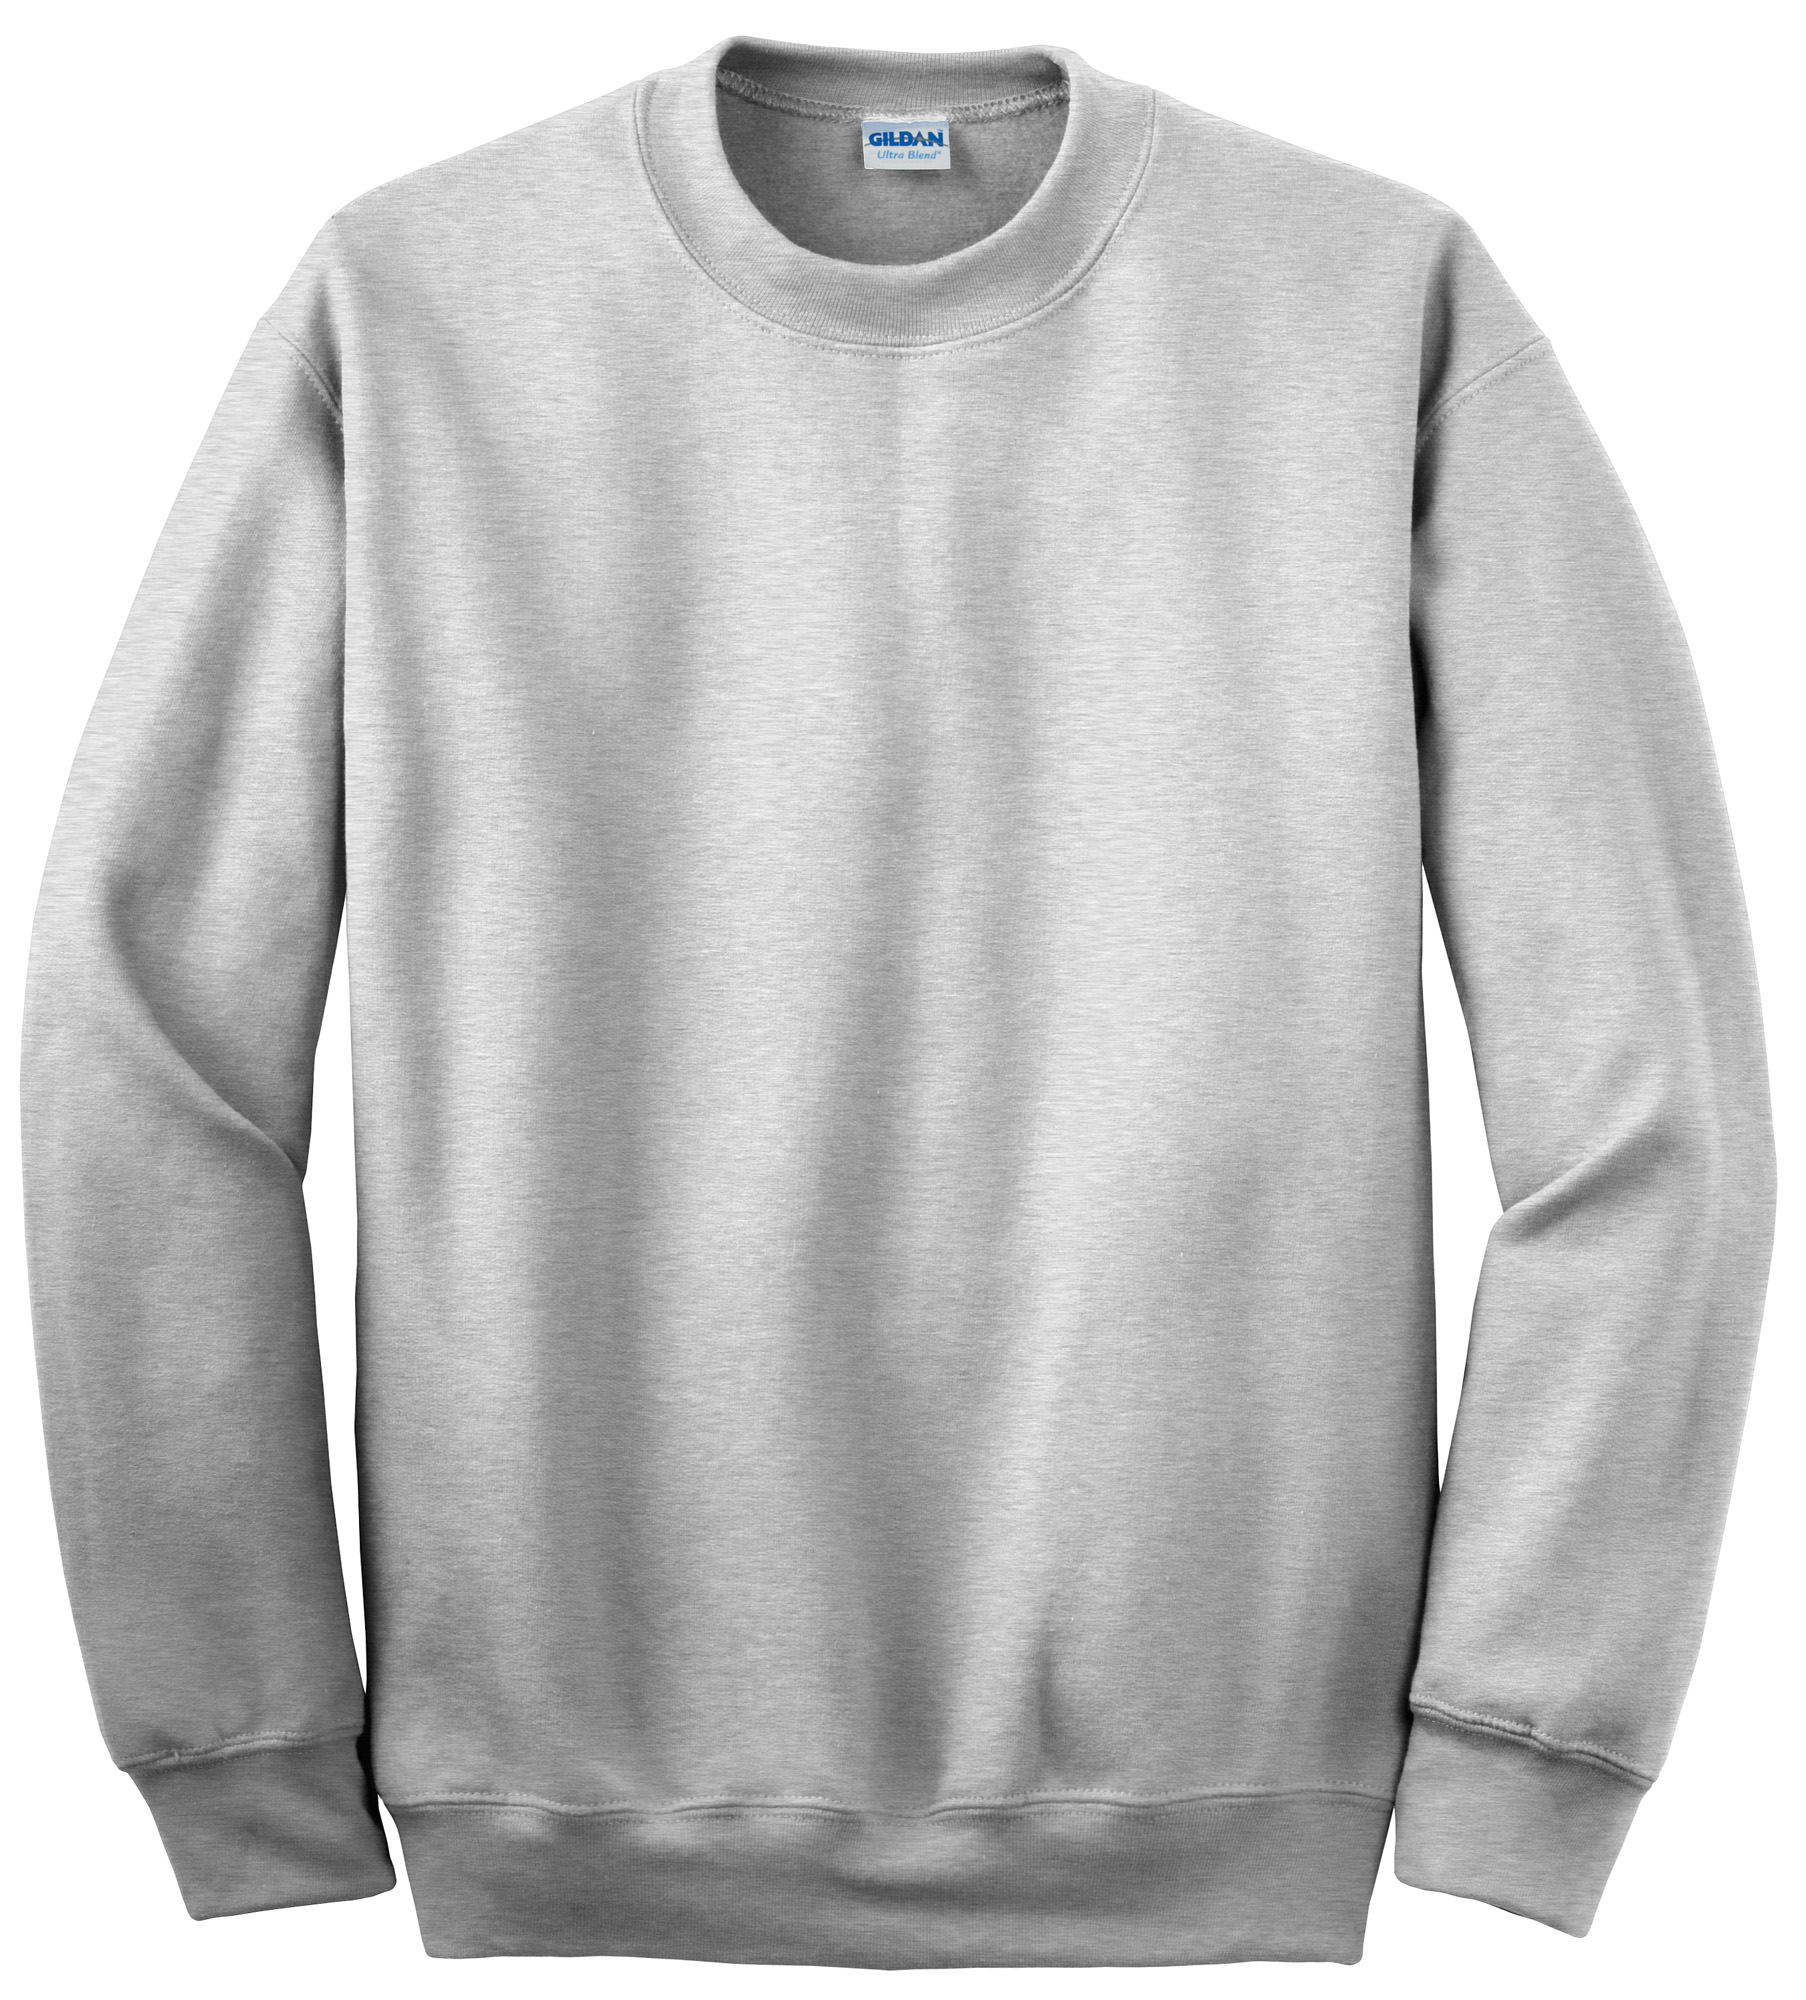 Images of Crewneck Sweatshirt - Reikian